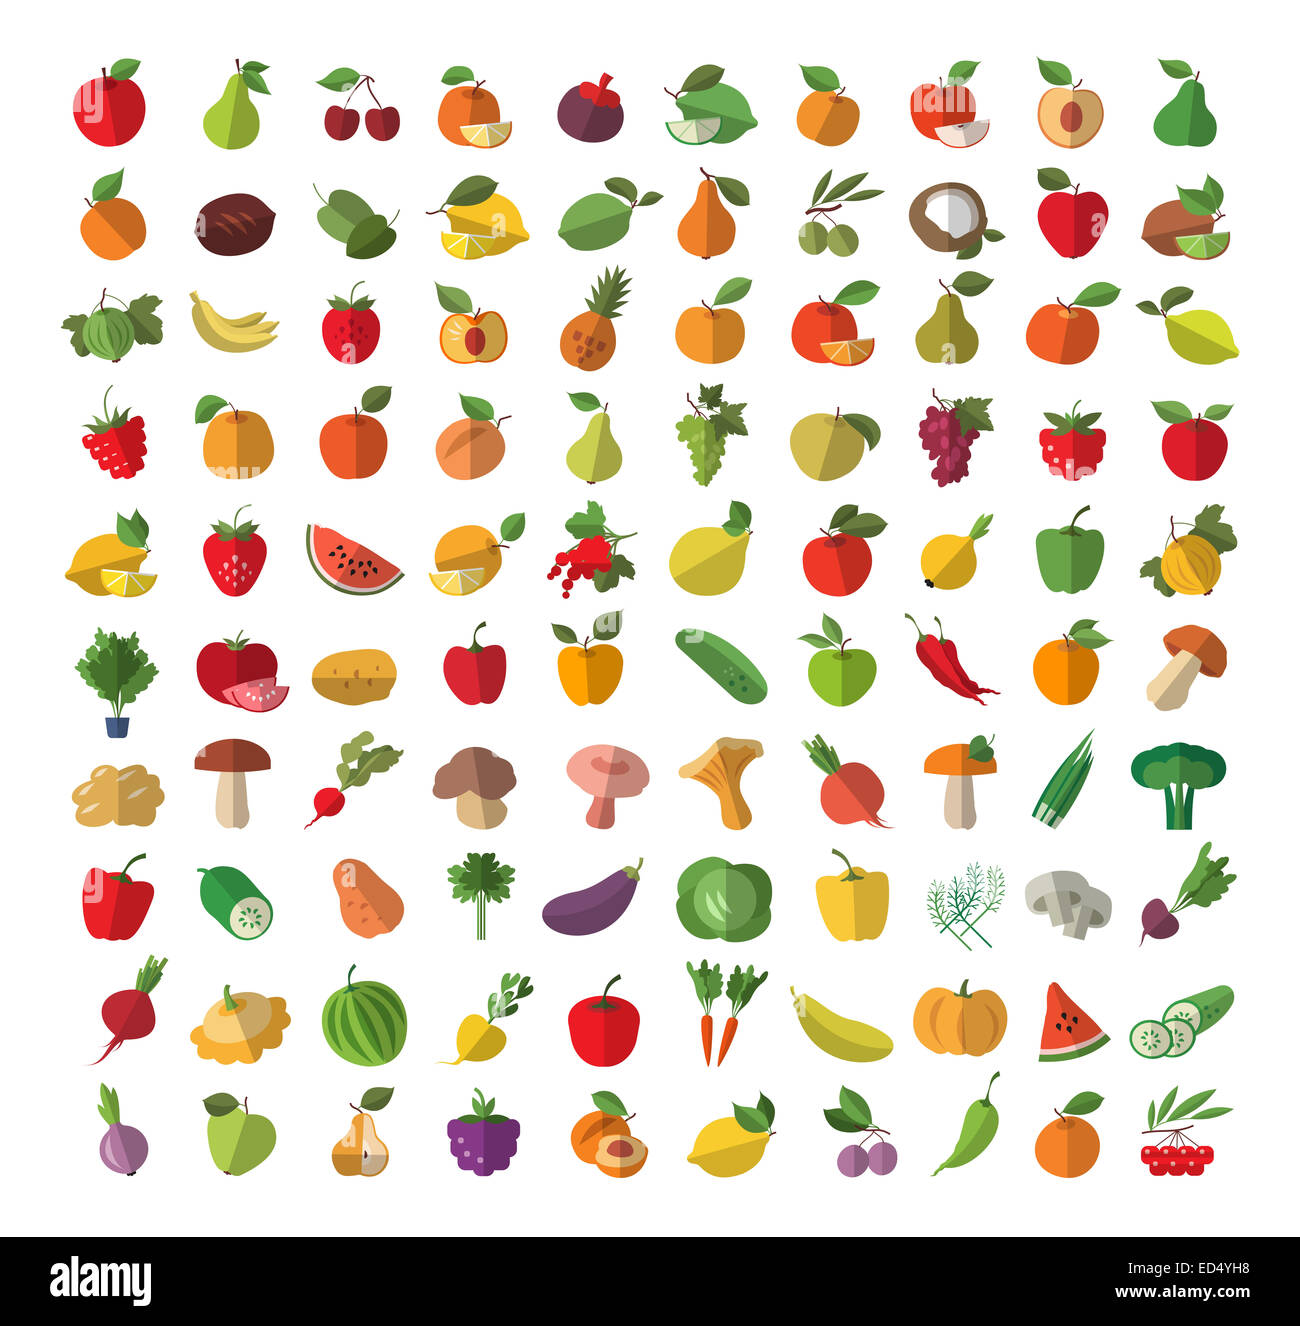 Food. Fruit and vegetables. Set of colored icons - Stock Image